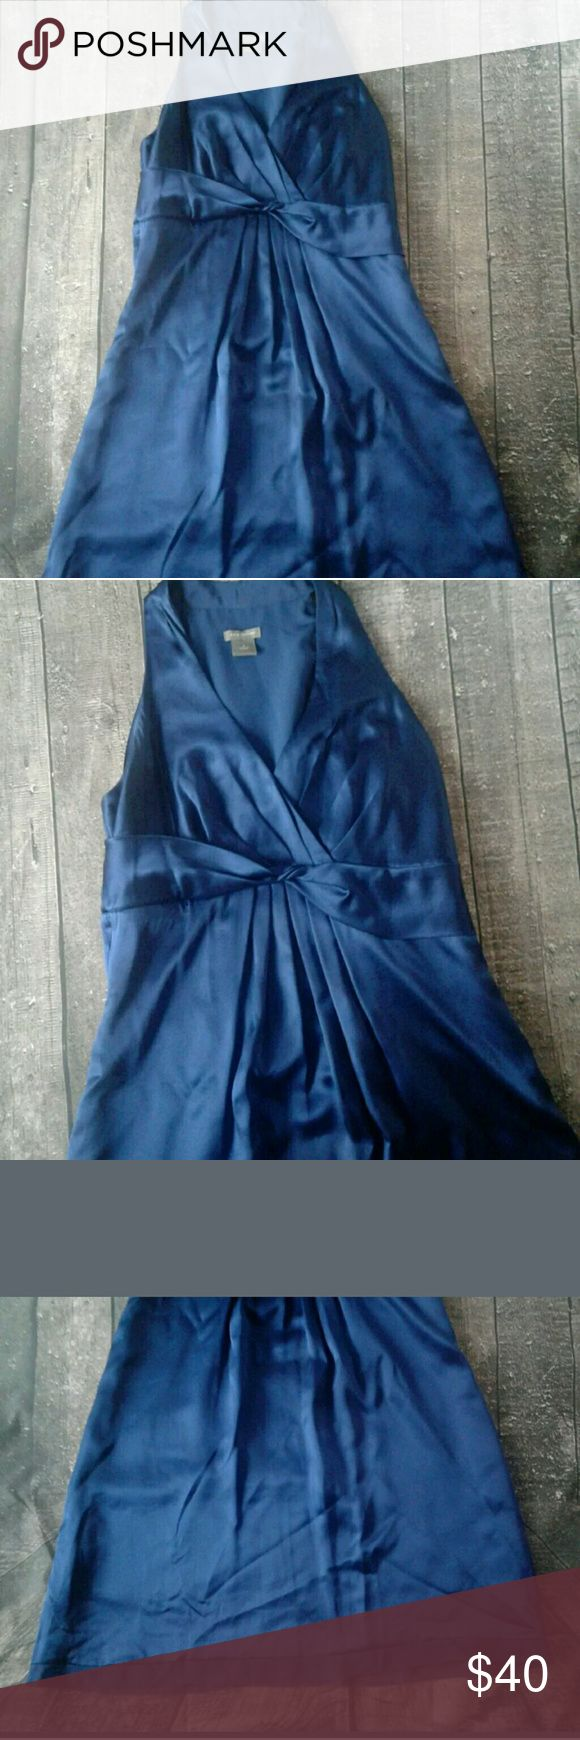 Ann Taylor Blue Cocktail Dress Size 4 Ann Taylor Blue Cocktail Dress Size 4 Used 1 time for a wedding it's in GREAT CONDITION Ann Taylor Dresses Wedding